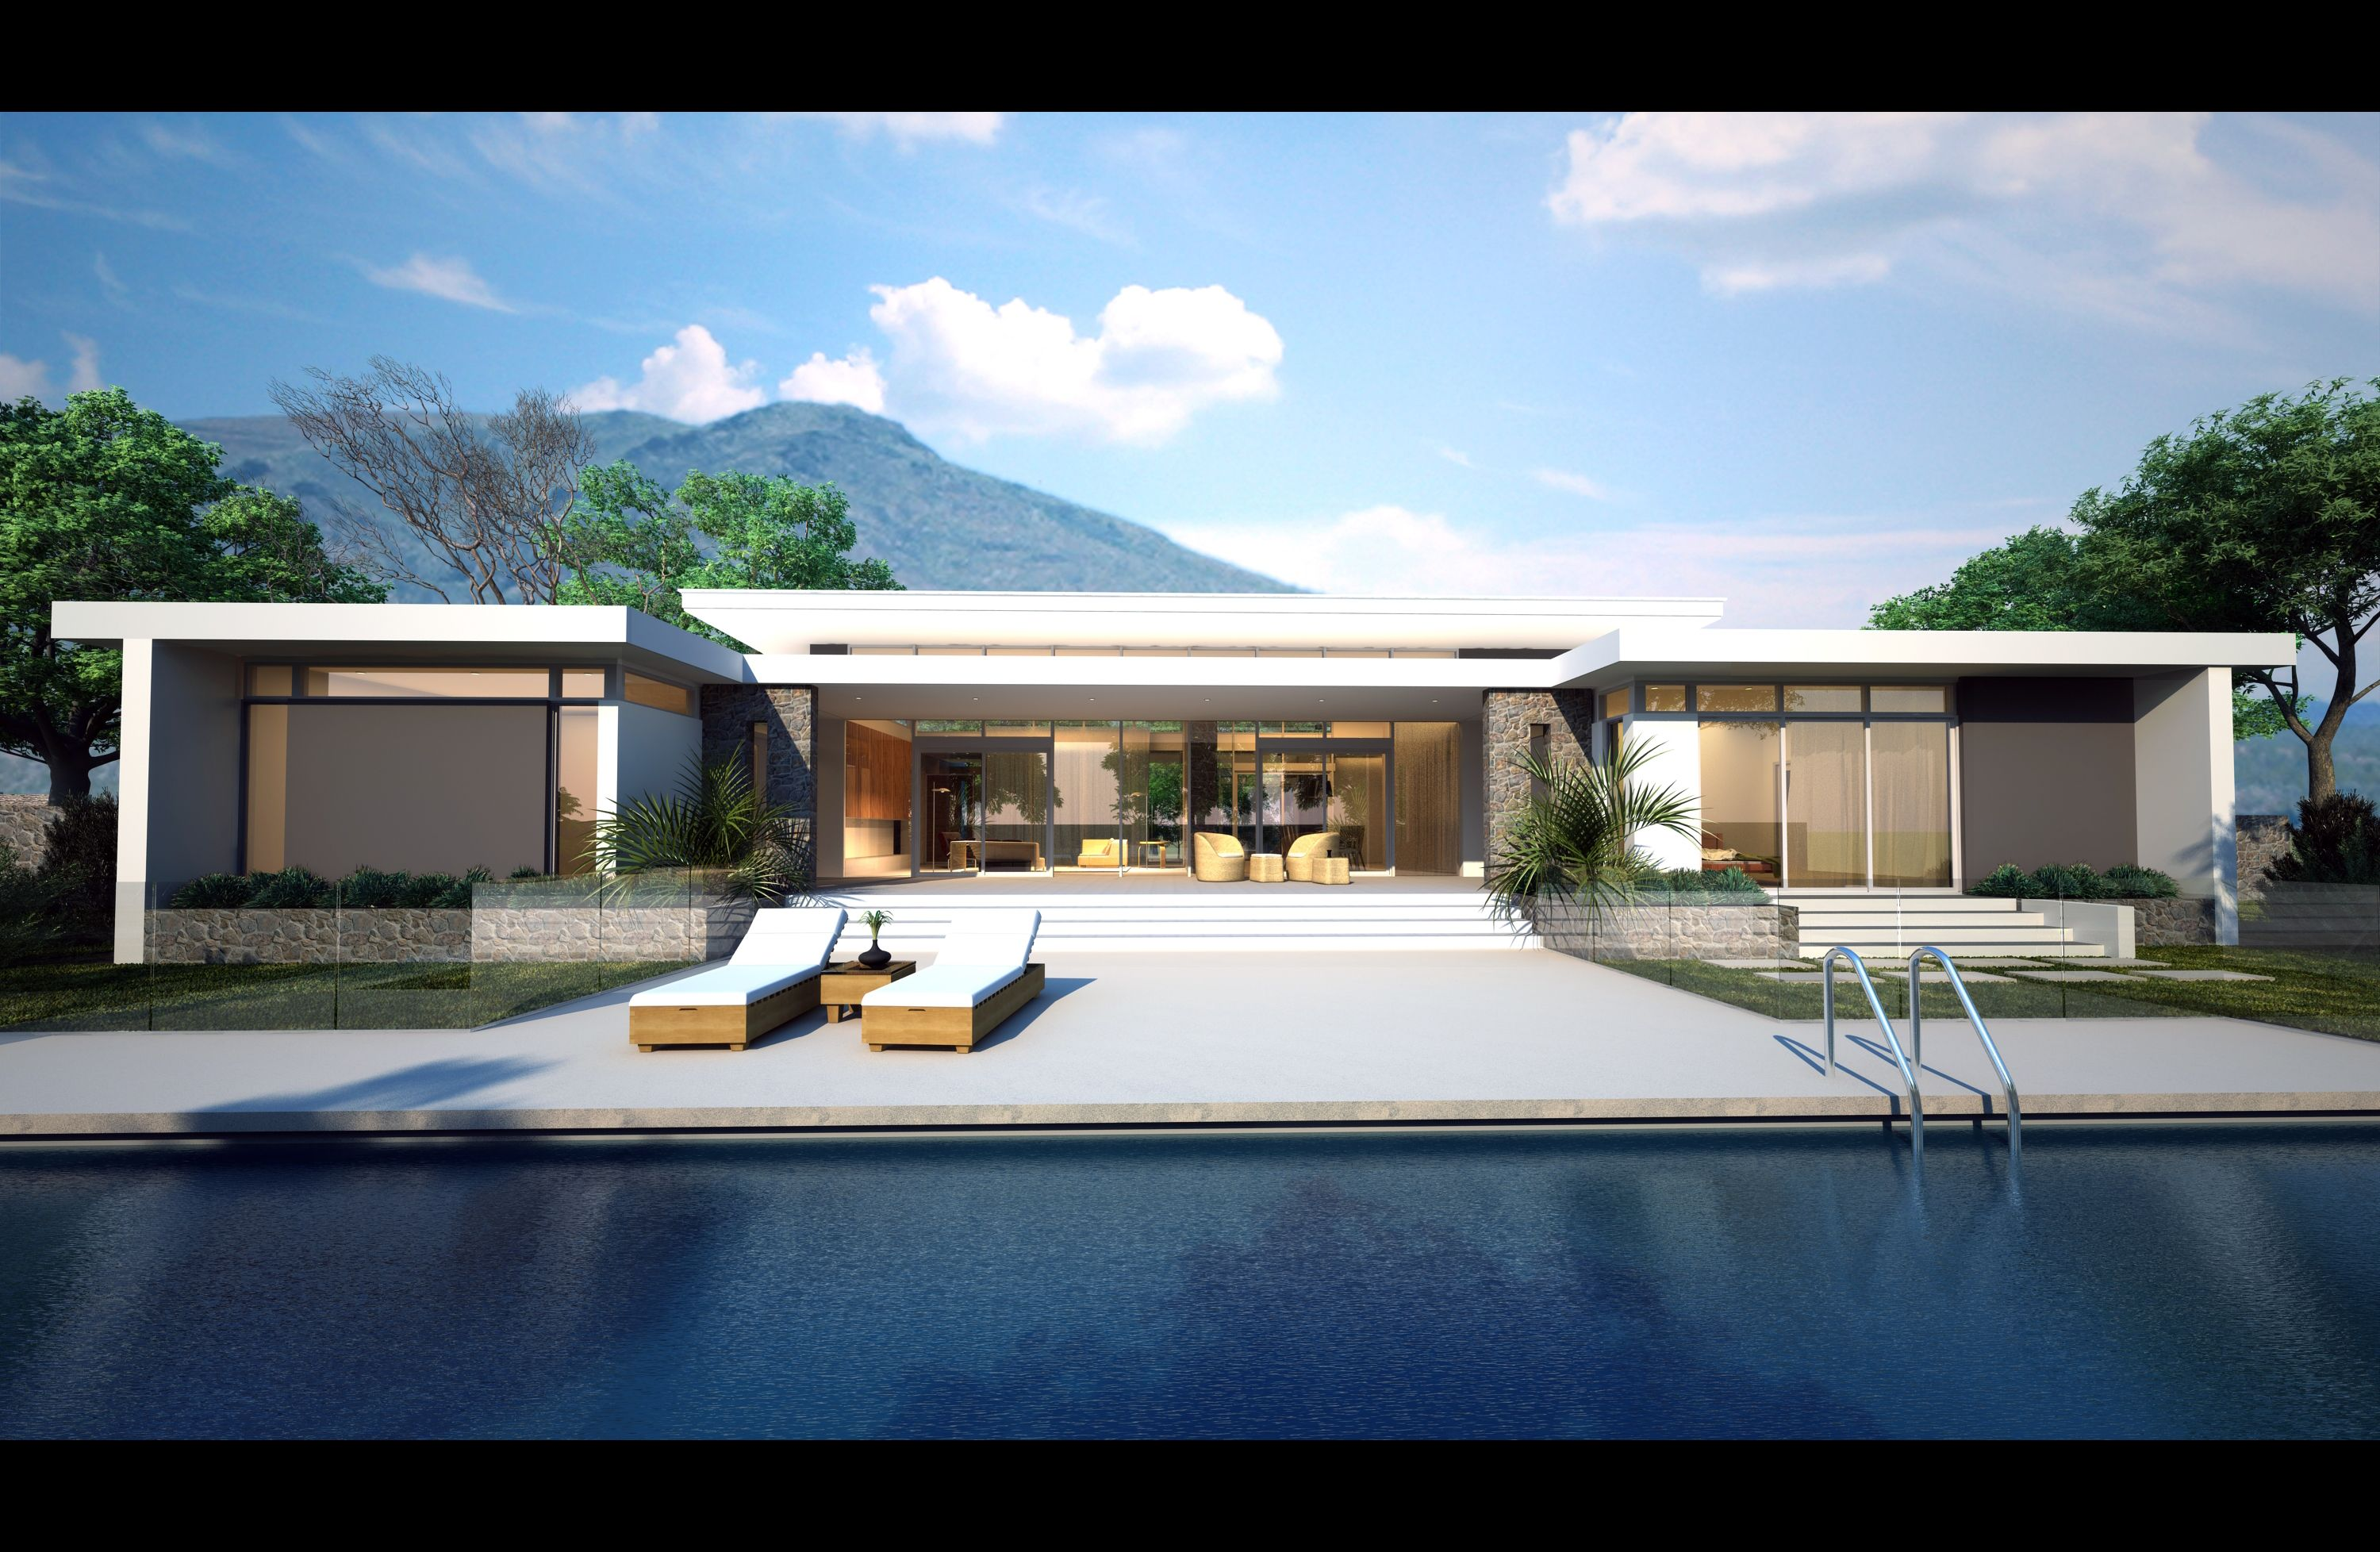 Single Story Flat Roof House Plans: A New Design By Perth Builder Platinum